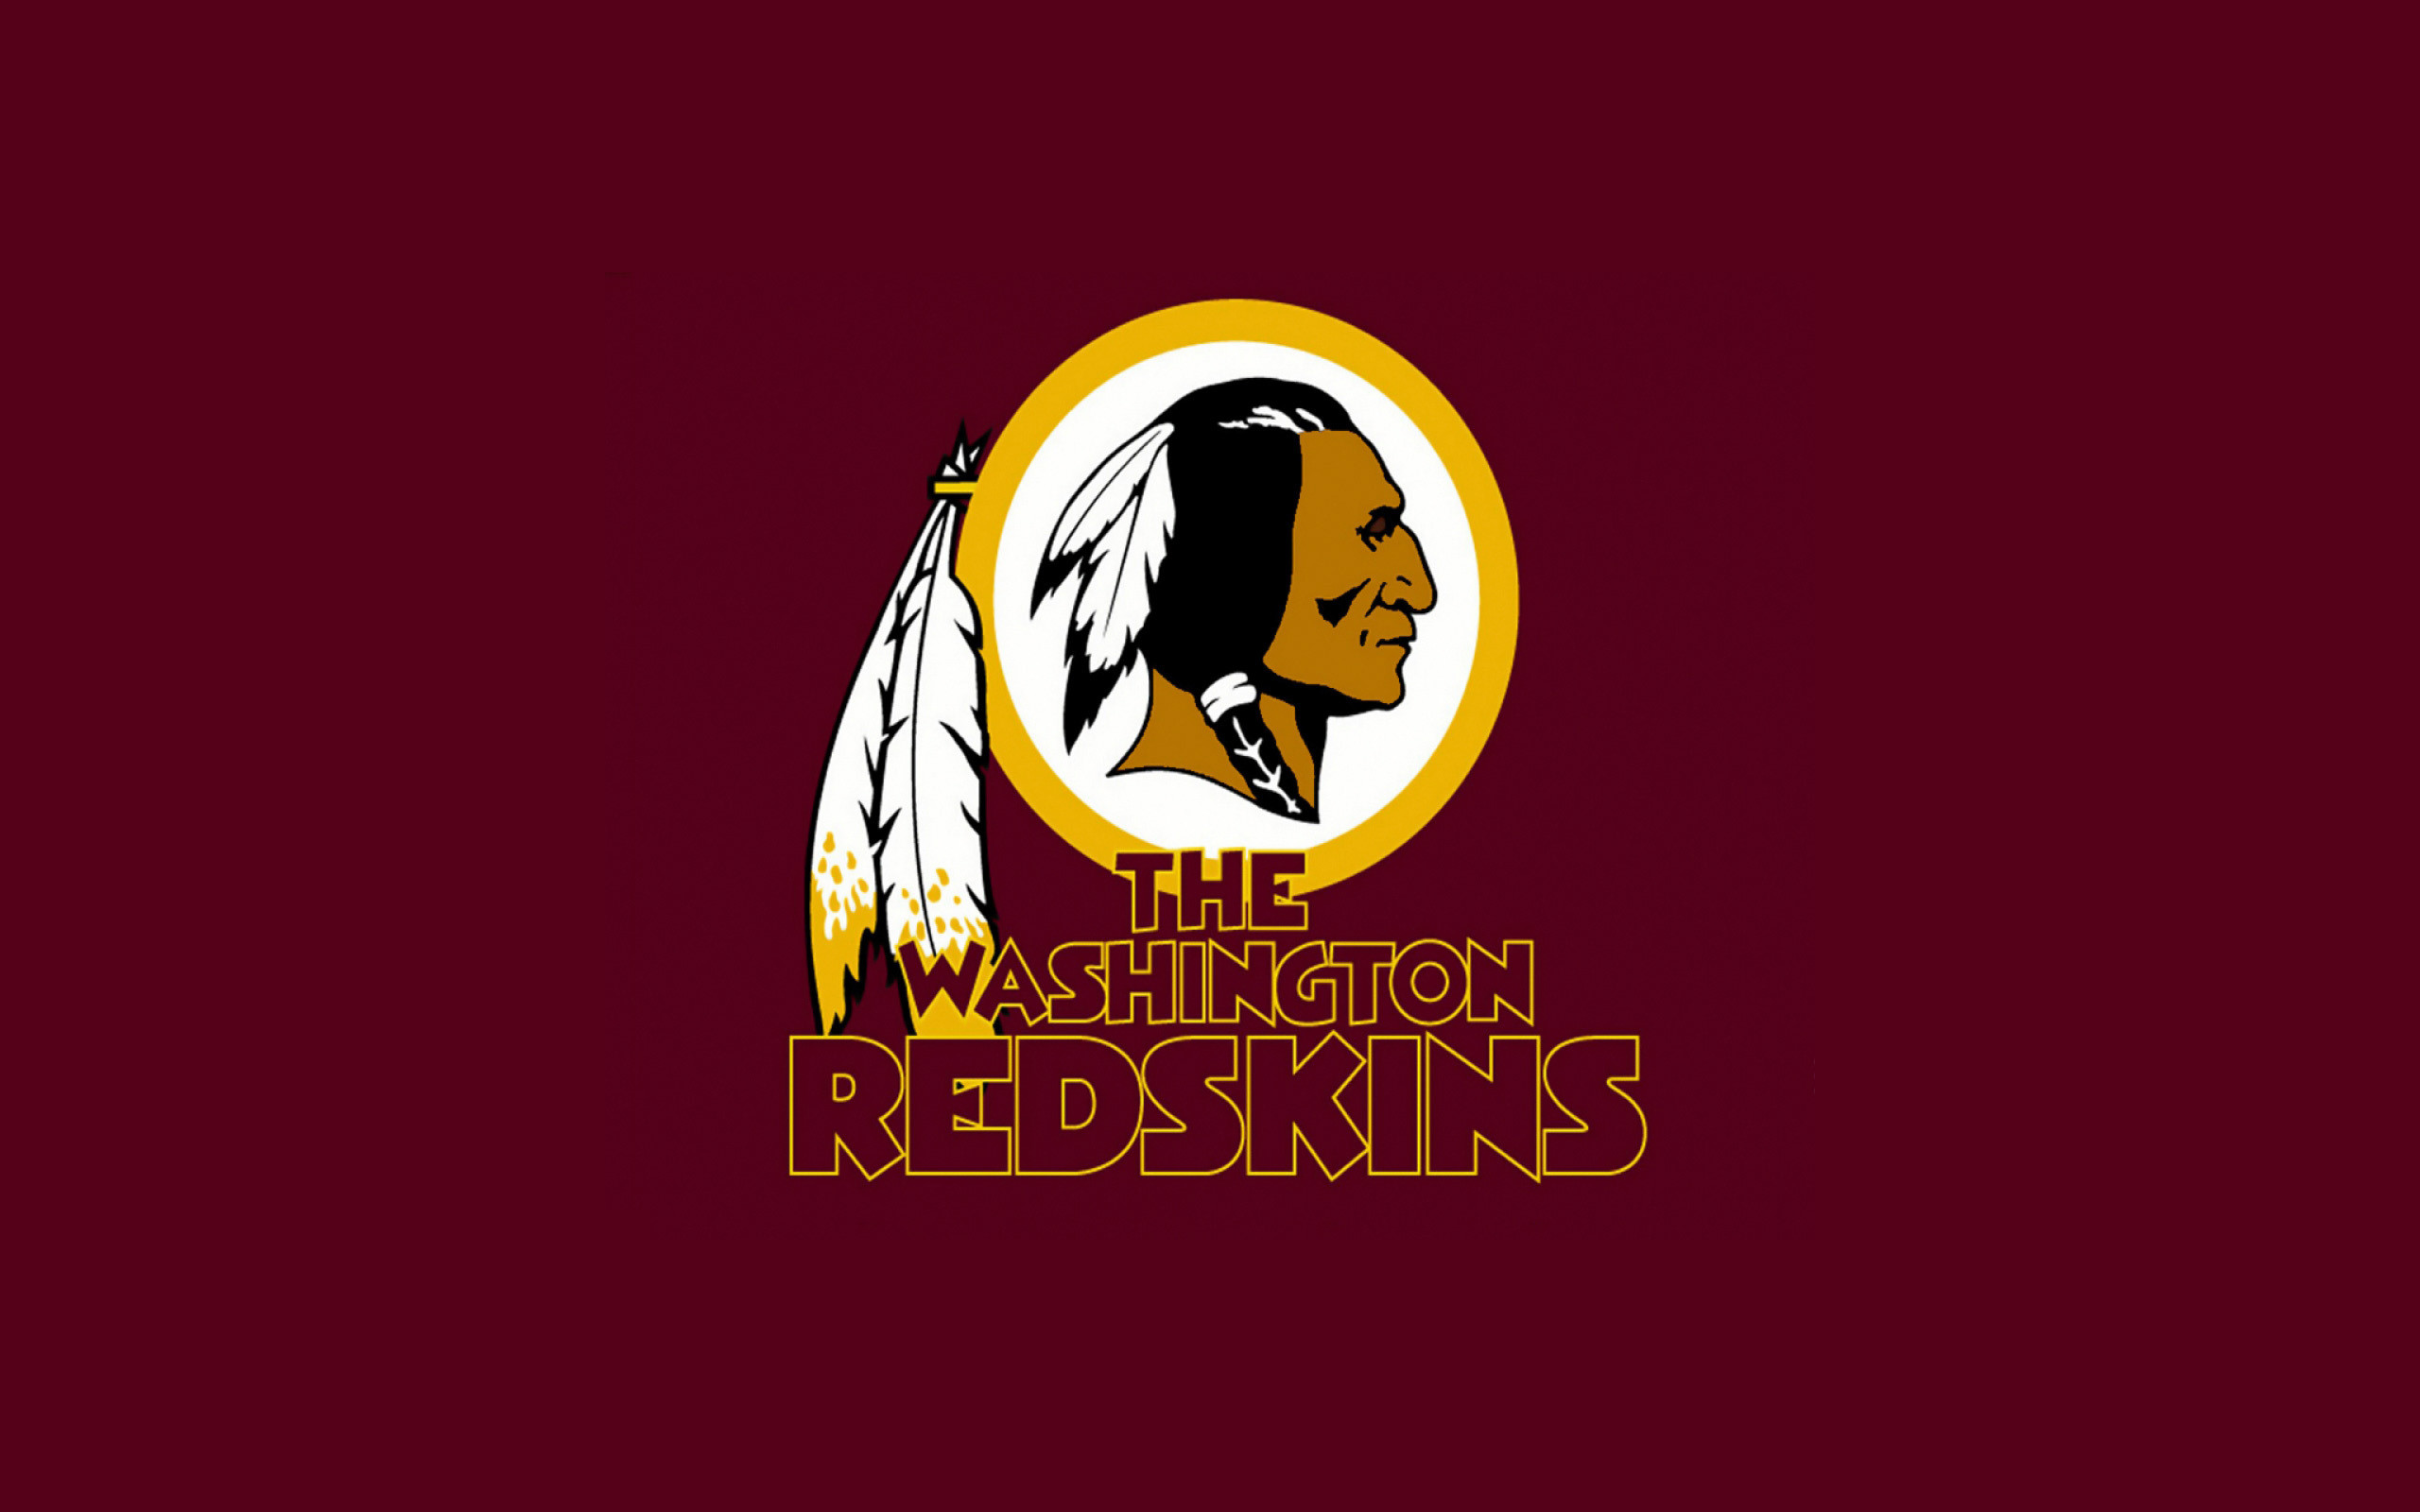 to show support your favorite NFC East division NFL football team .